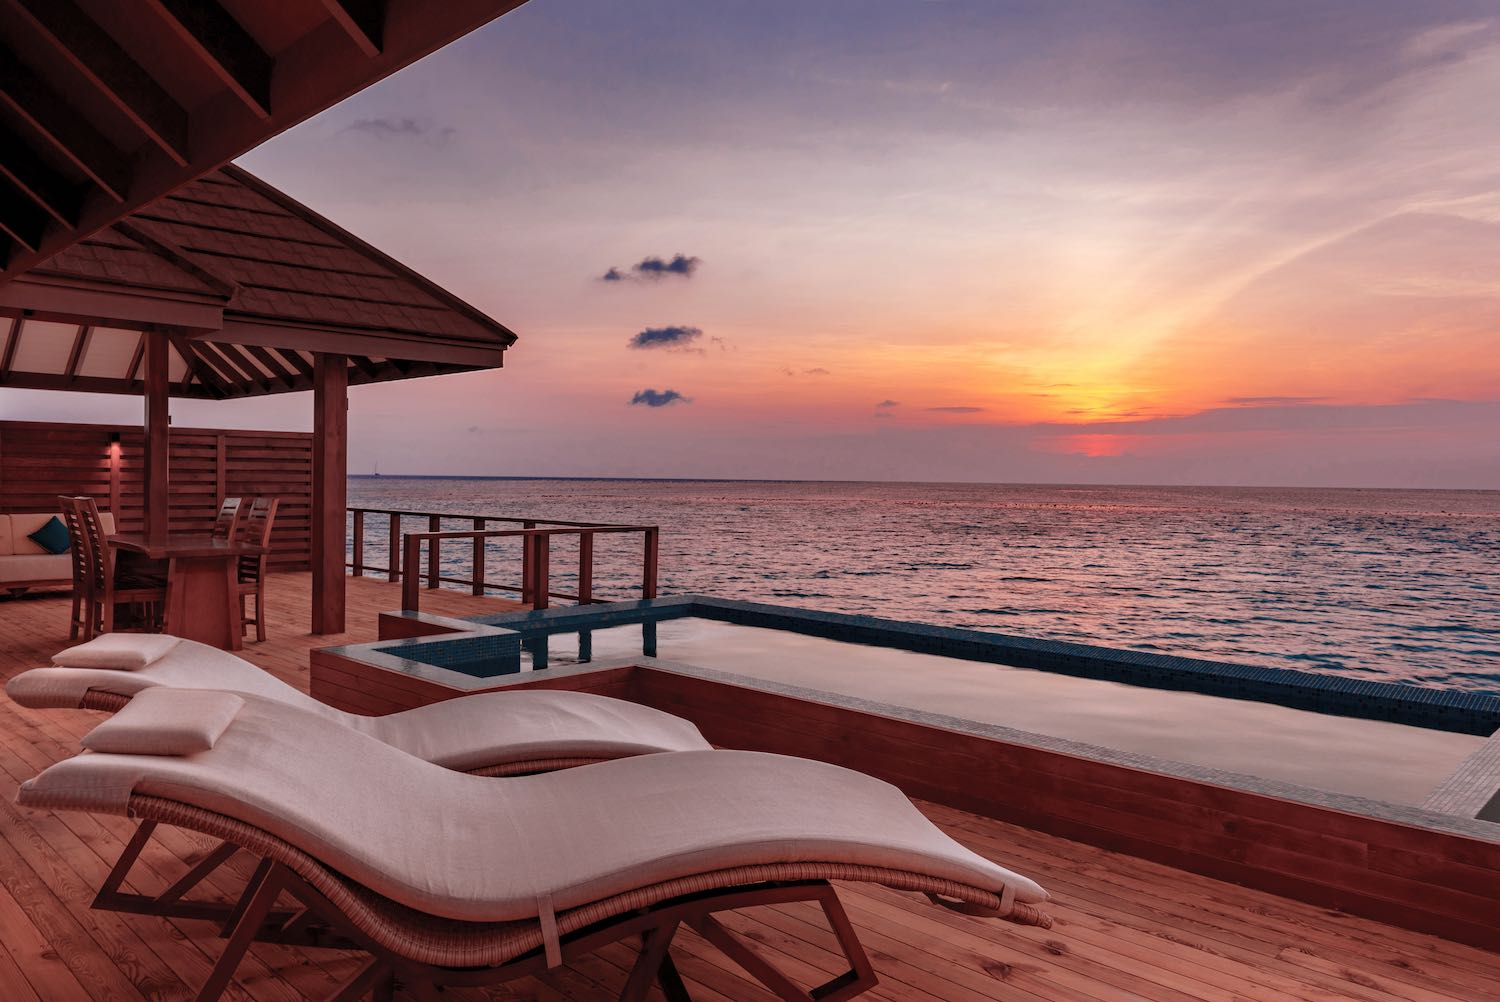 maldives-varu-by-atmosphere-the-water-suite-pool-deck-at-sunset-holiday-honeymoon-vacation-invite-to-paradise.jpg